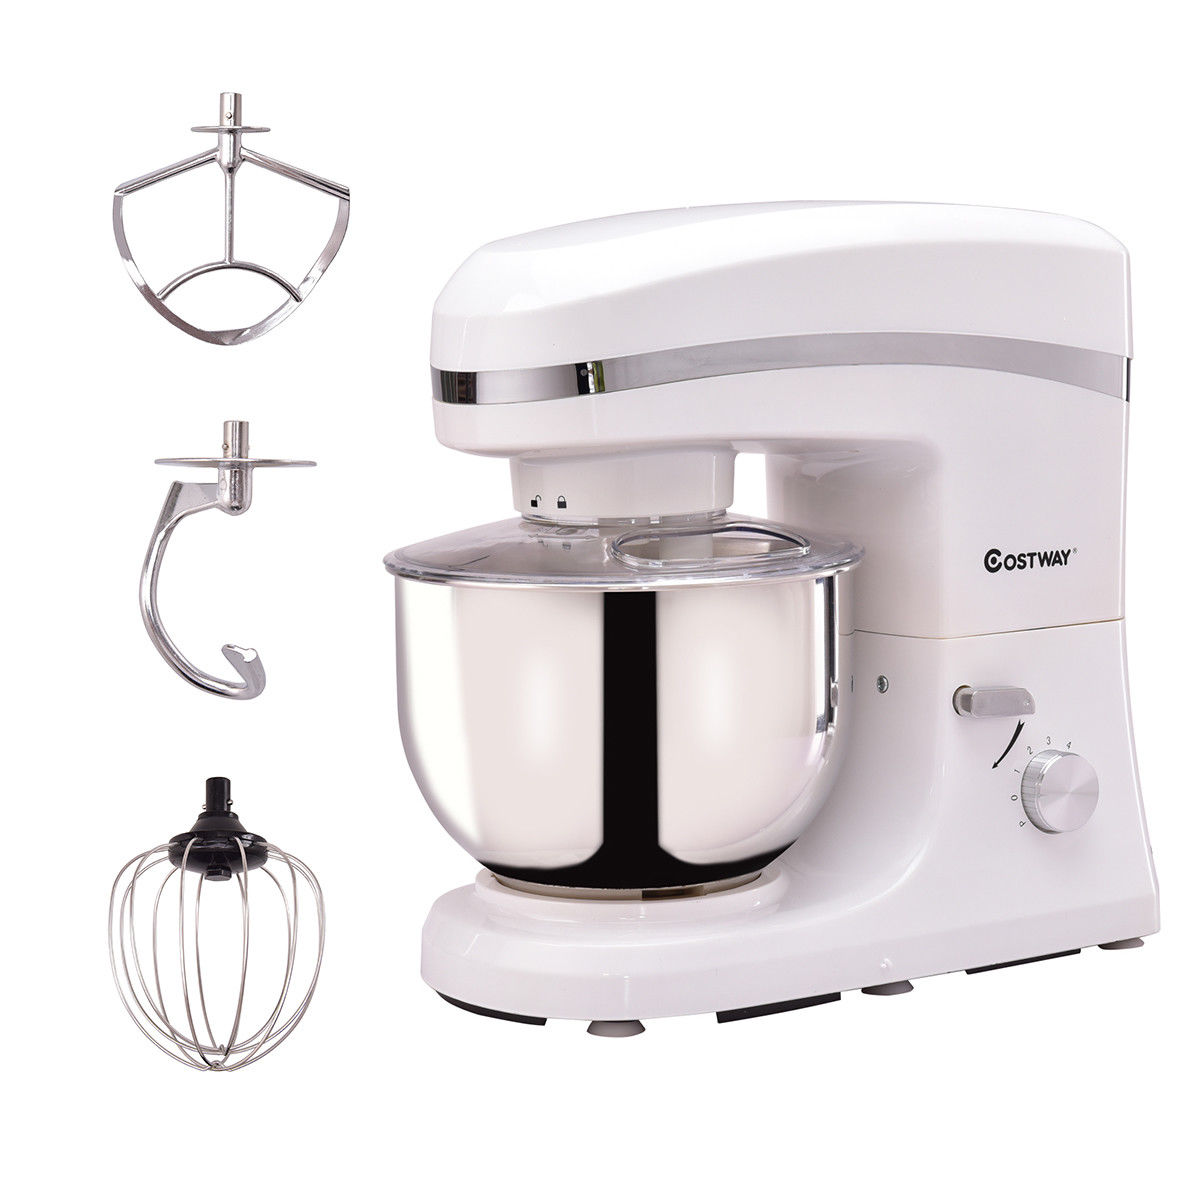 5L 120V/800W 6 Speed Electric Food Stand Mixer Tilt-Head Stainless Steel Bowl WT - image 9 de 10